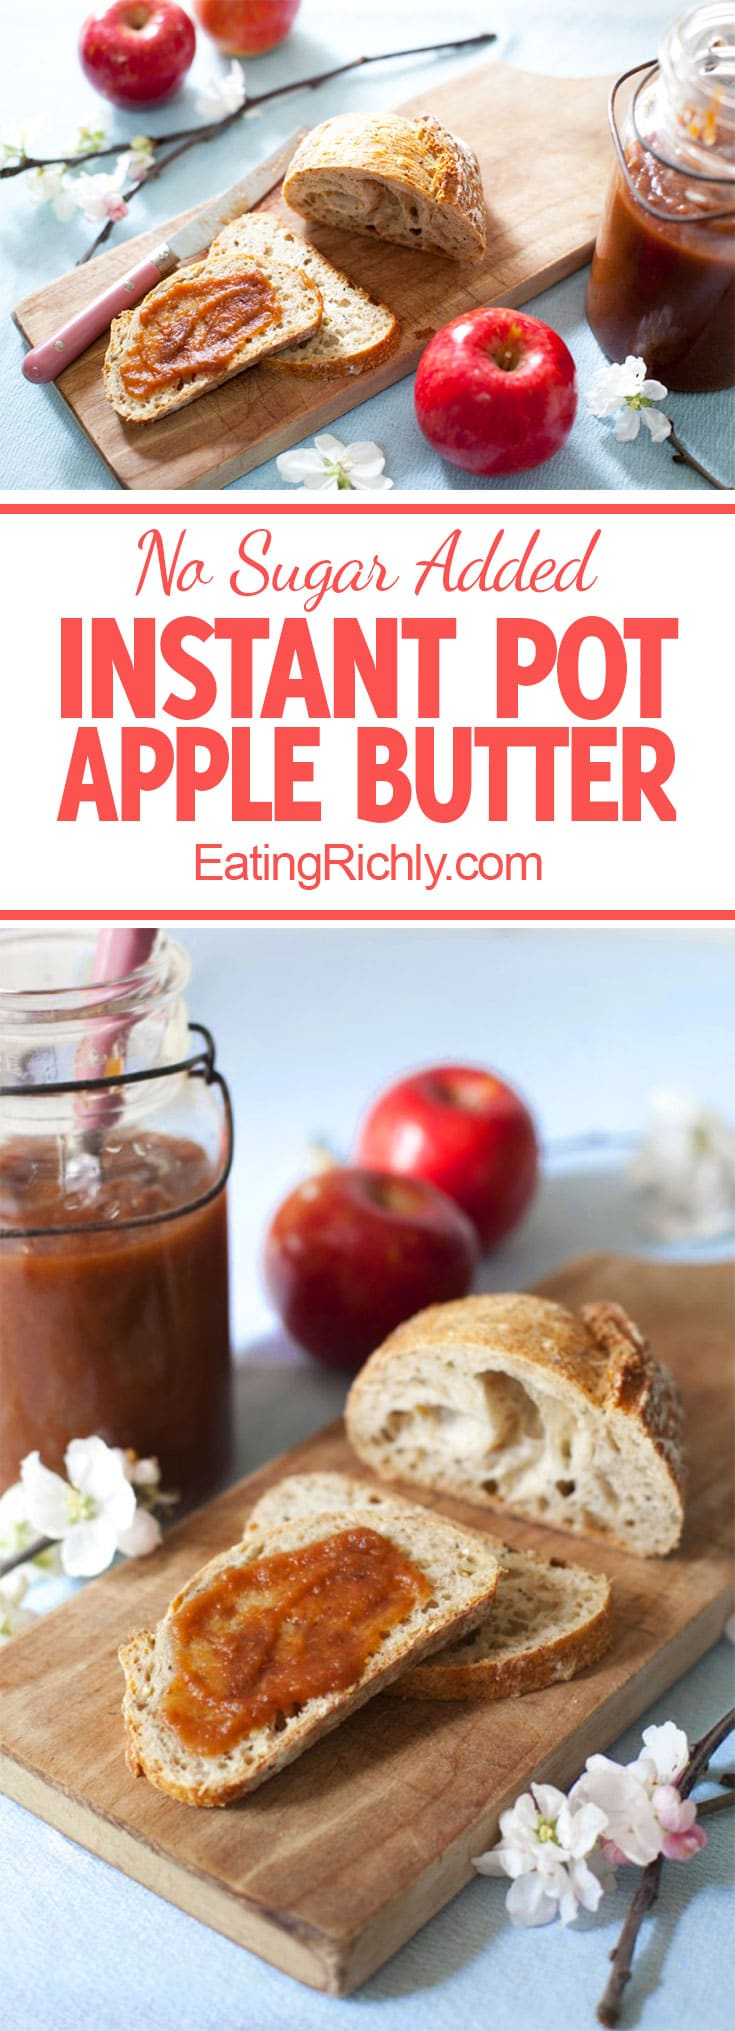 This healthy apple butter has no added sugar, and is made in the Instant Pot! From EatingRichly.com